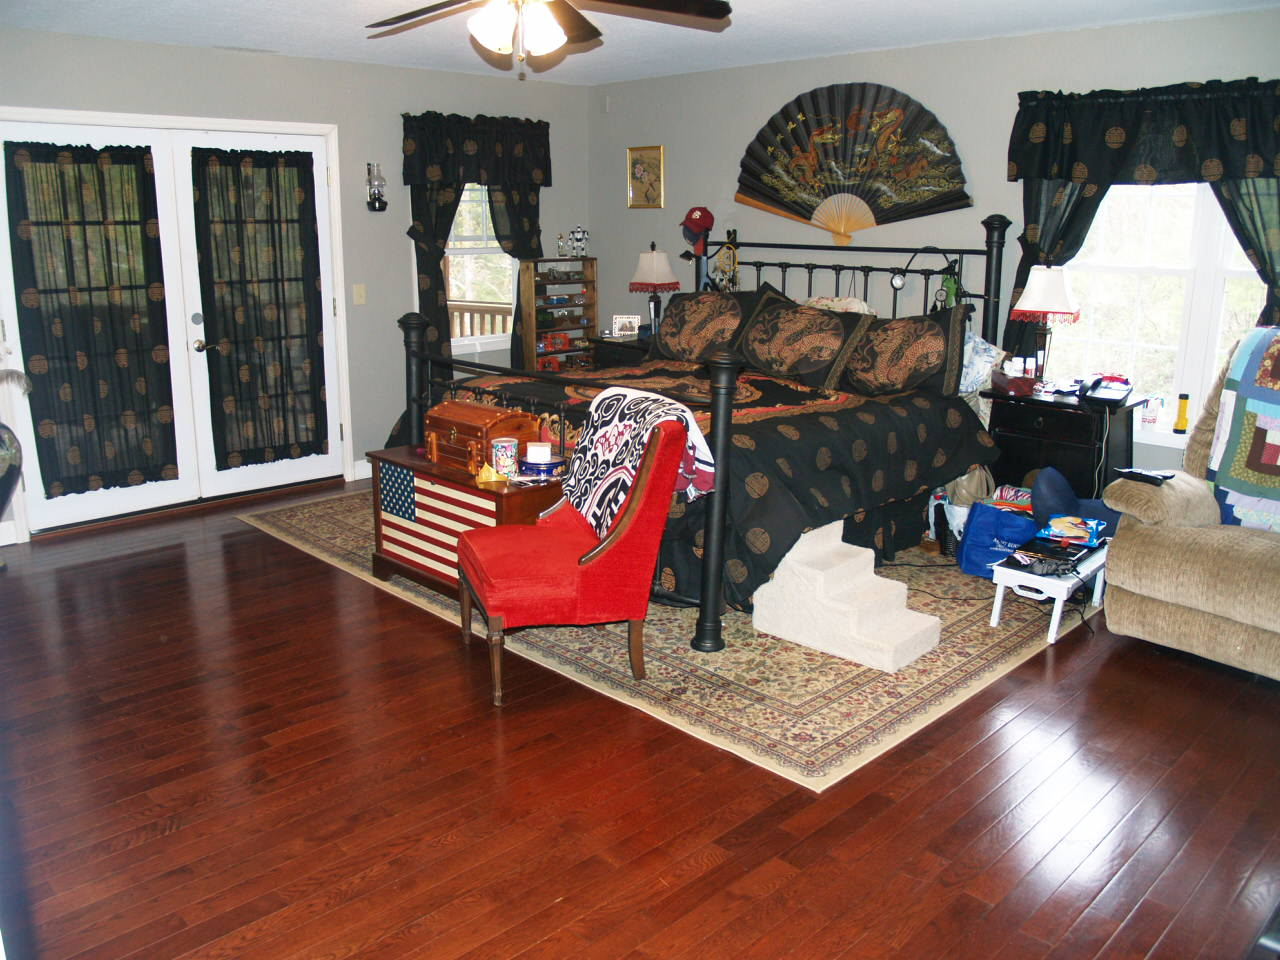 Wonderful 3 year new home in ott - The year of the wonderful bedroom ...